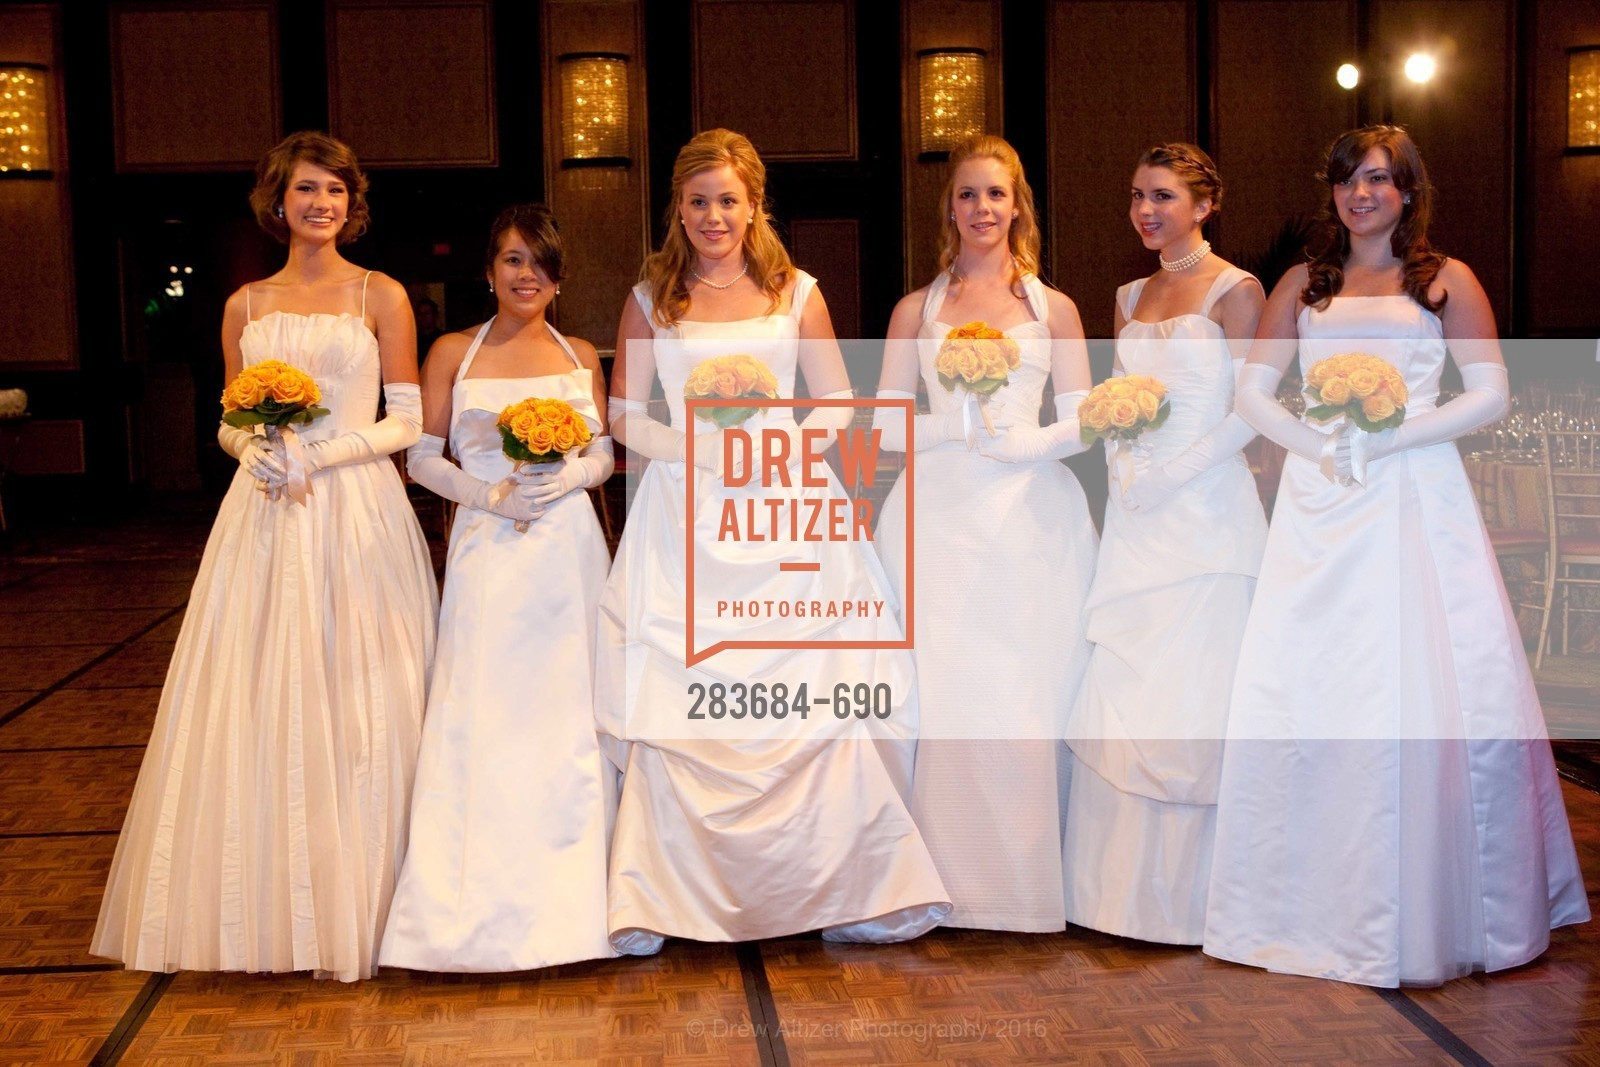 Grace Pritchett Milligan, Marissa Lee Seto, Alexandra Averell Lively Edmondson, Elizabeth Collins Hullar, Grace Mitchell Schlesinger, Victoria Crisler Hetz, 2009 Debutante Ball, Unknown, July 4th, 2008,Drew Altizer, Drew Altizer Photography, full-service agency, private events, San Francisco photographer, photographer california